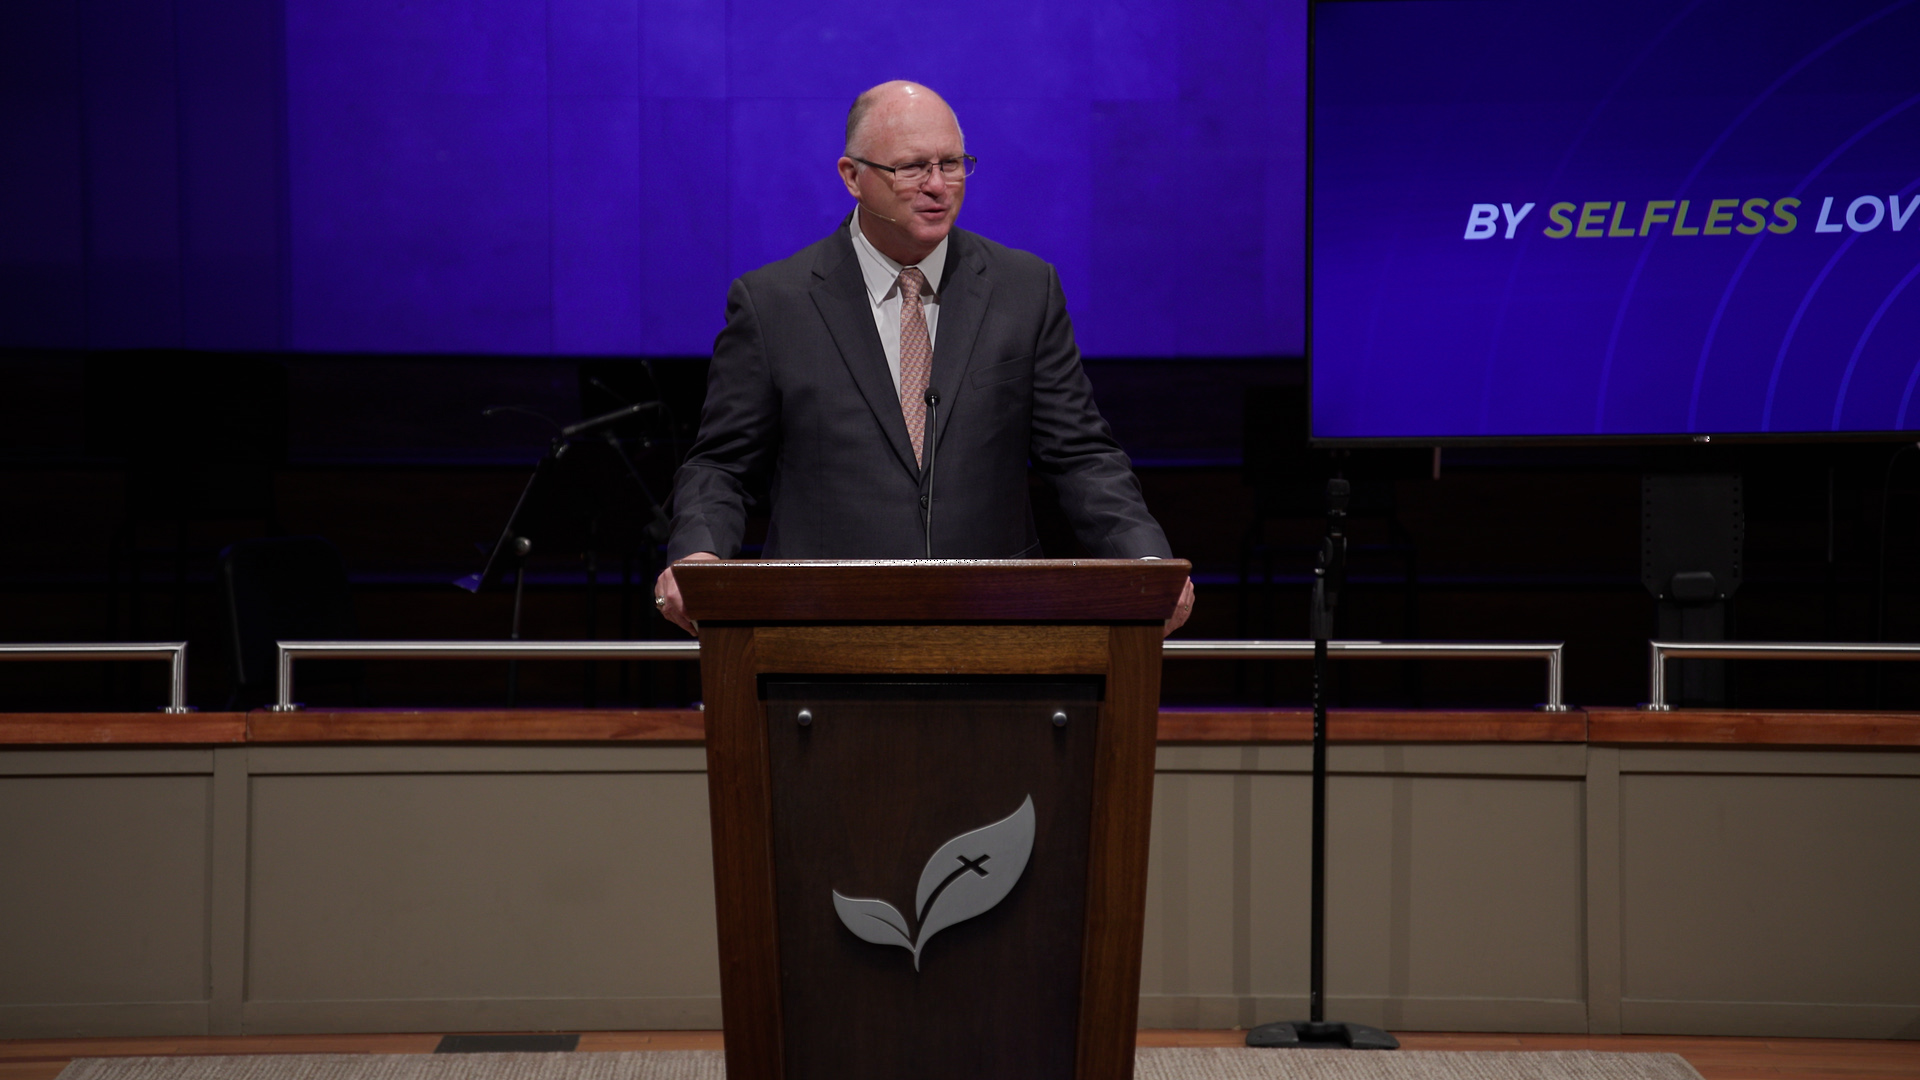 Pastor Paul Chappell: The Gospel in Marriage